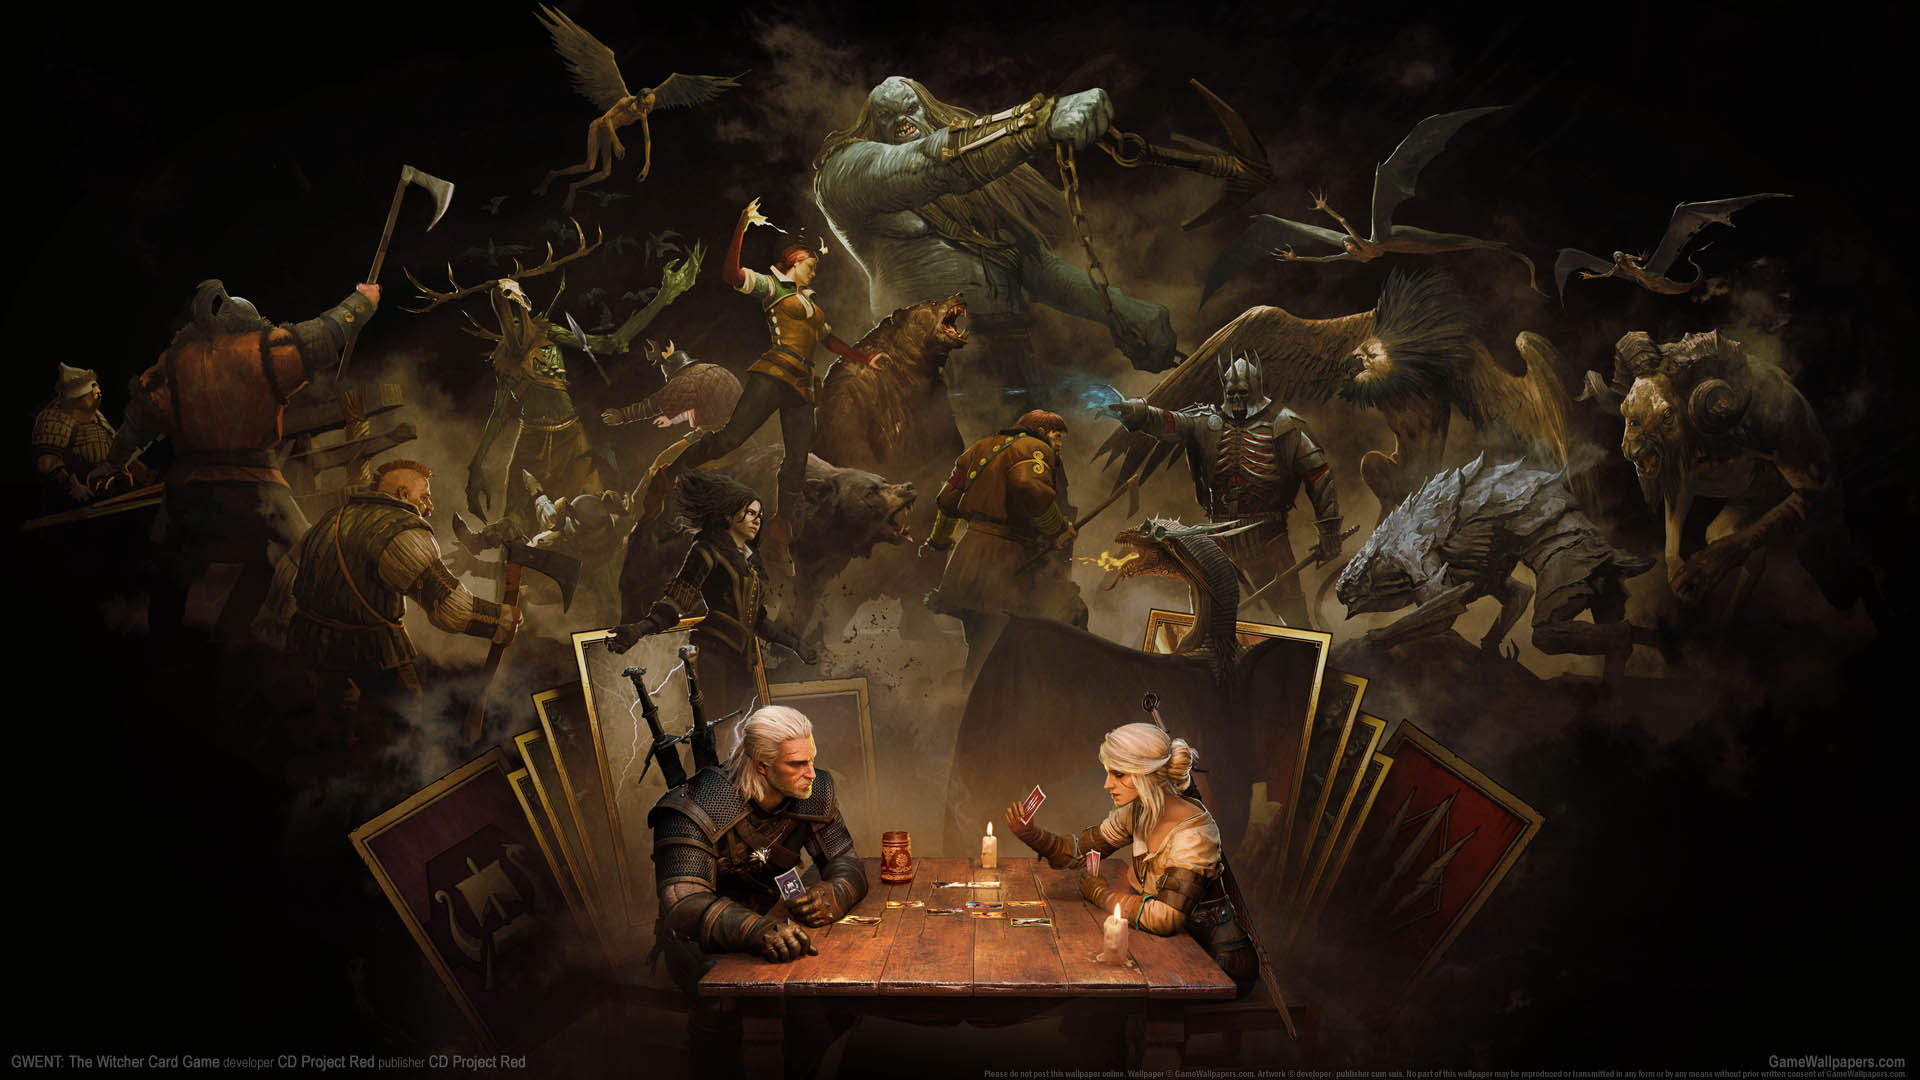 GWENT: The Witcher Card Game fondo de escritorio 07 1920x1080